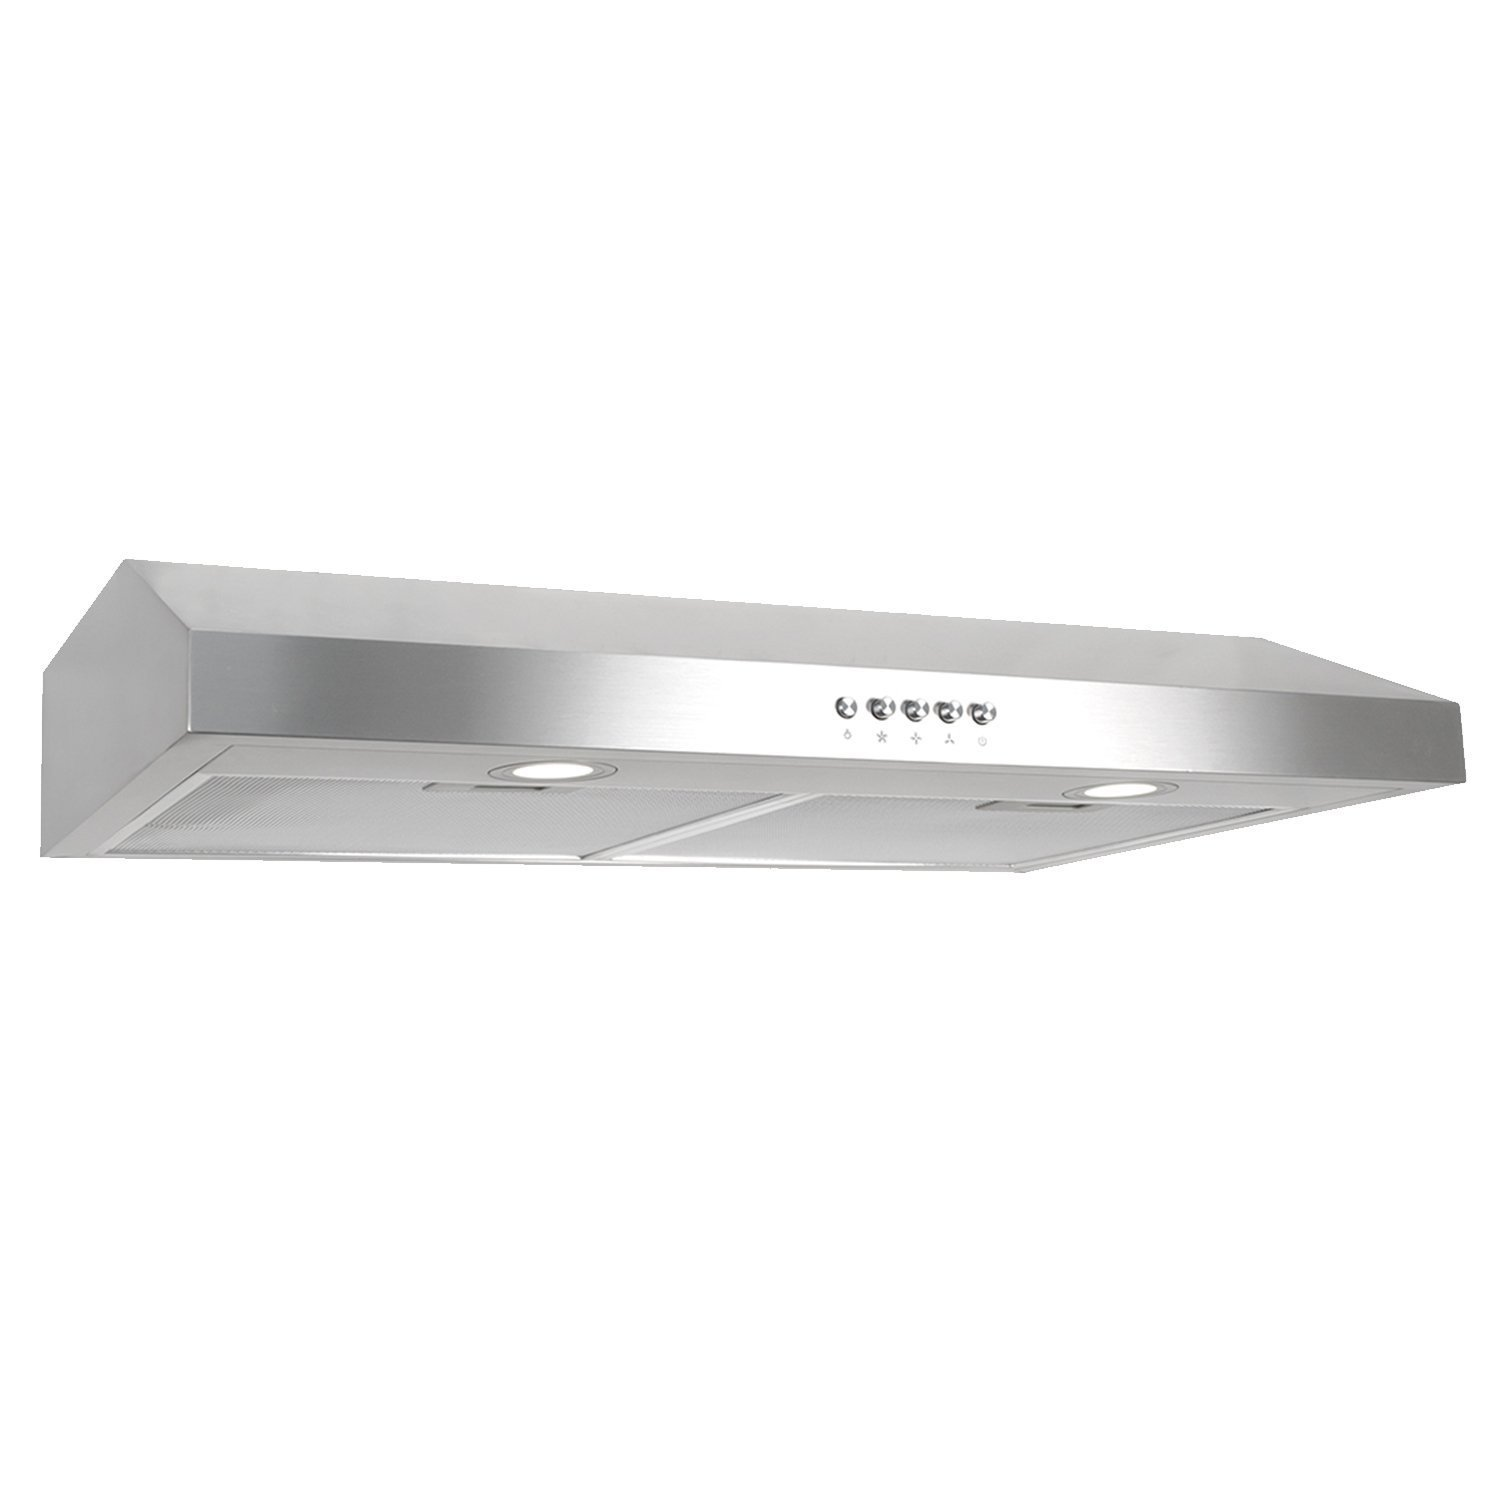 250 CFM Ducted Under Cabinet Range Hood With Push Button Control Panel